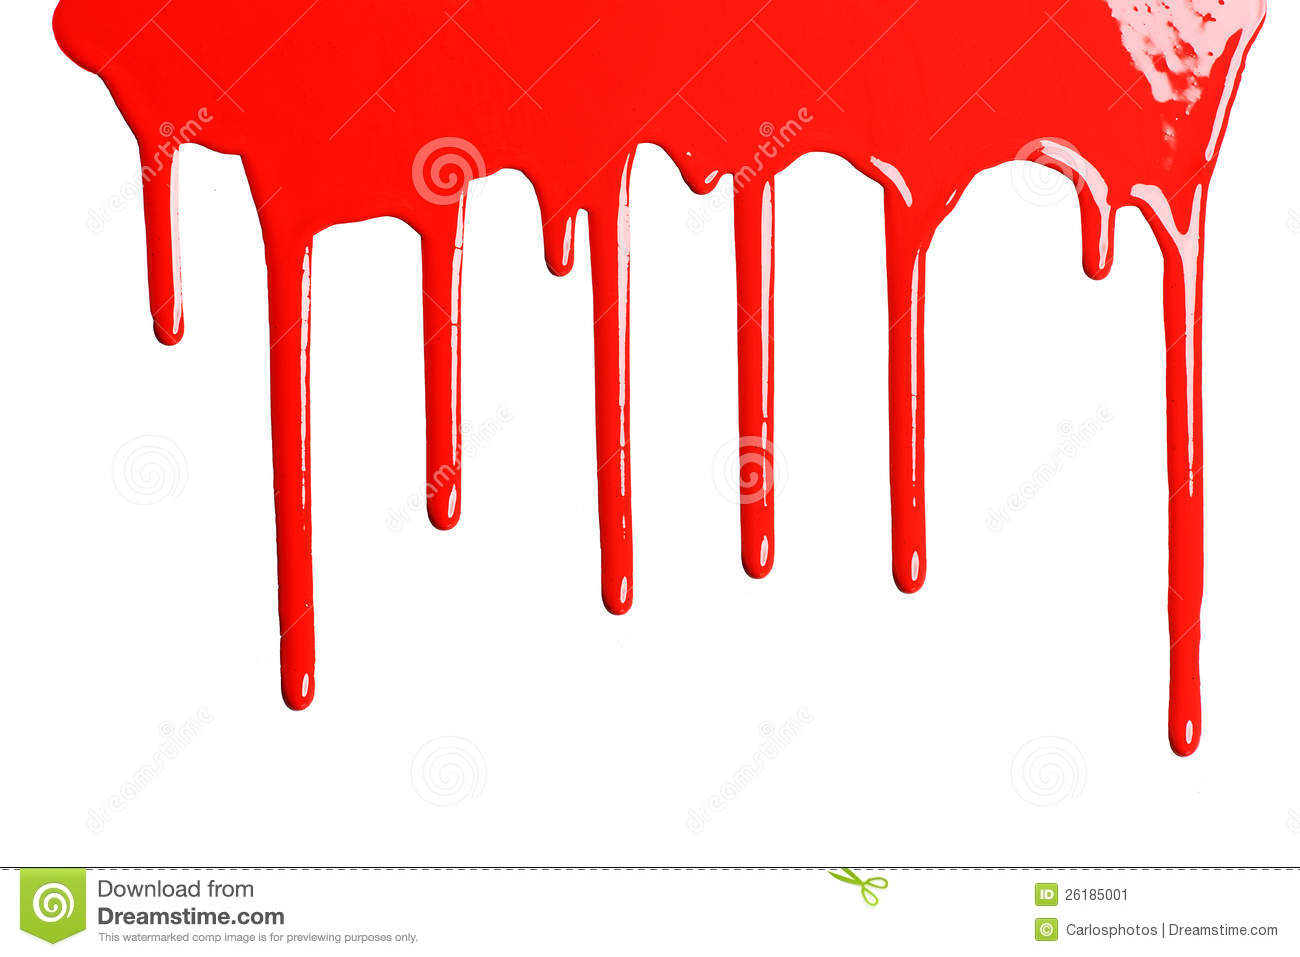 dripping blood clipart border free - photo #28